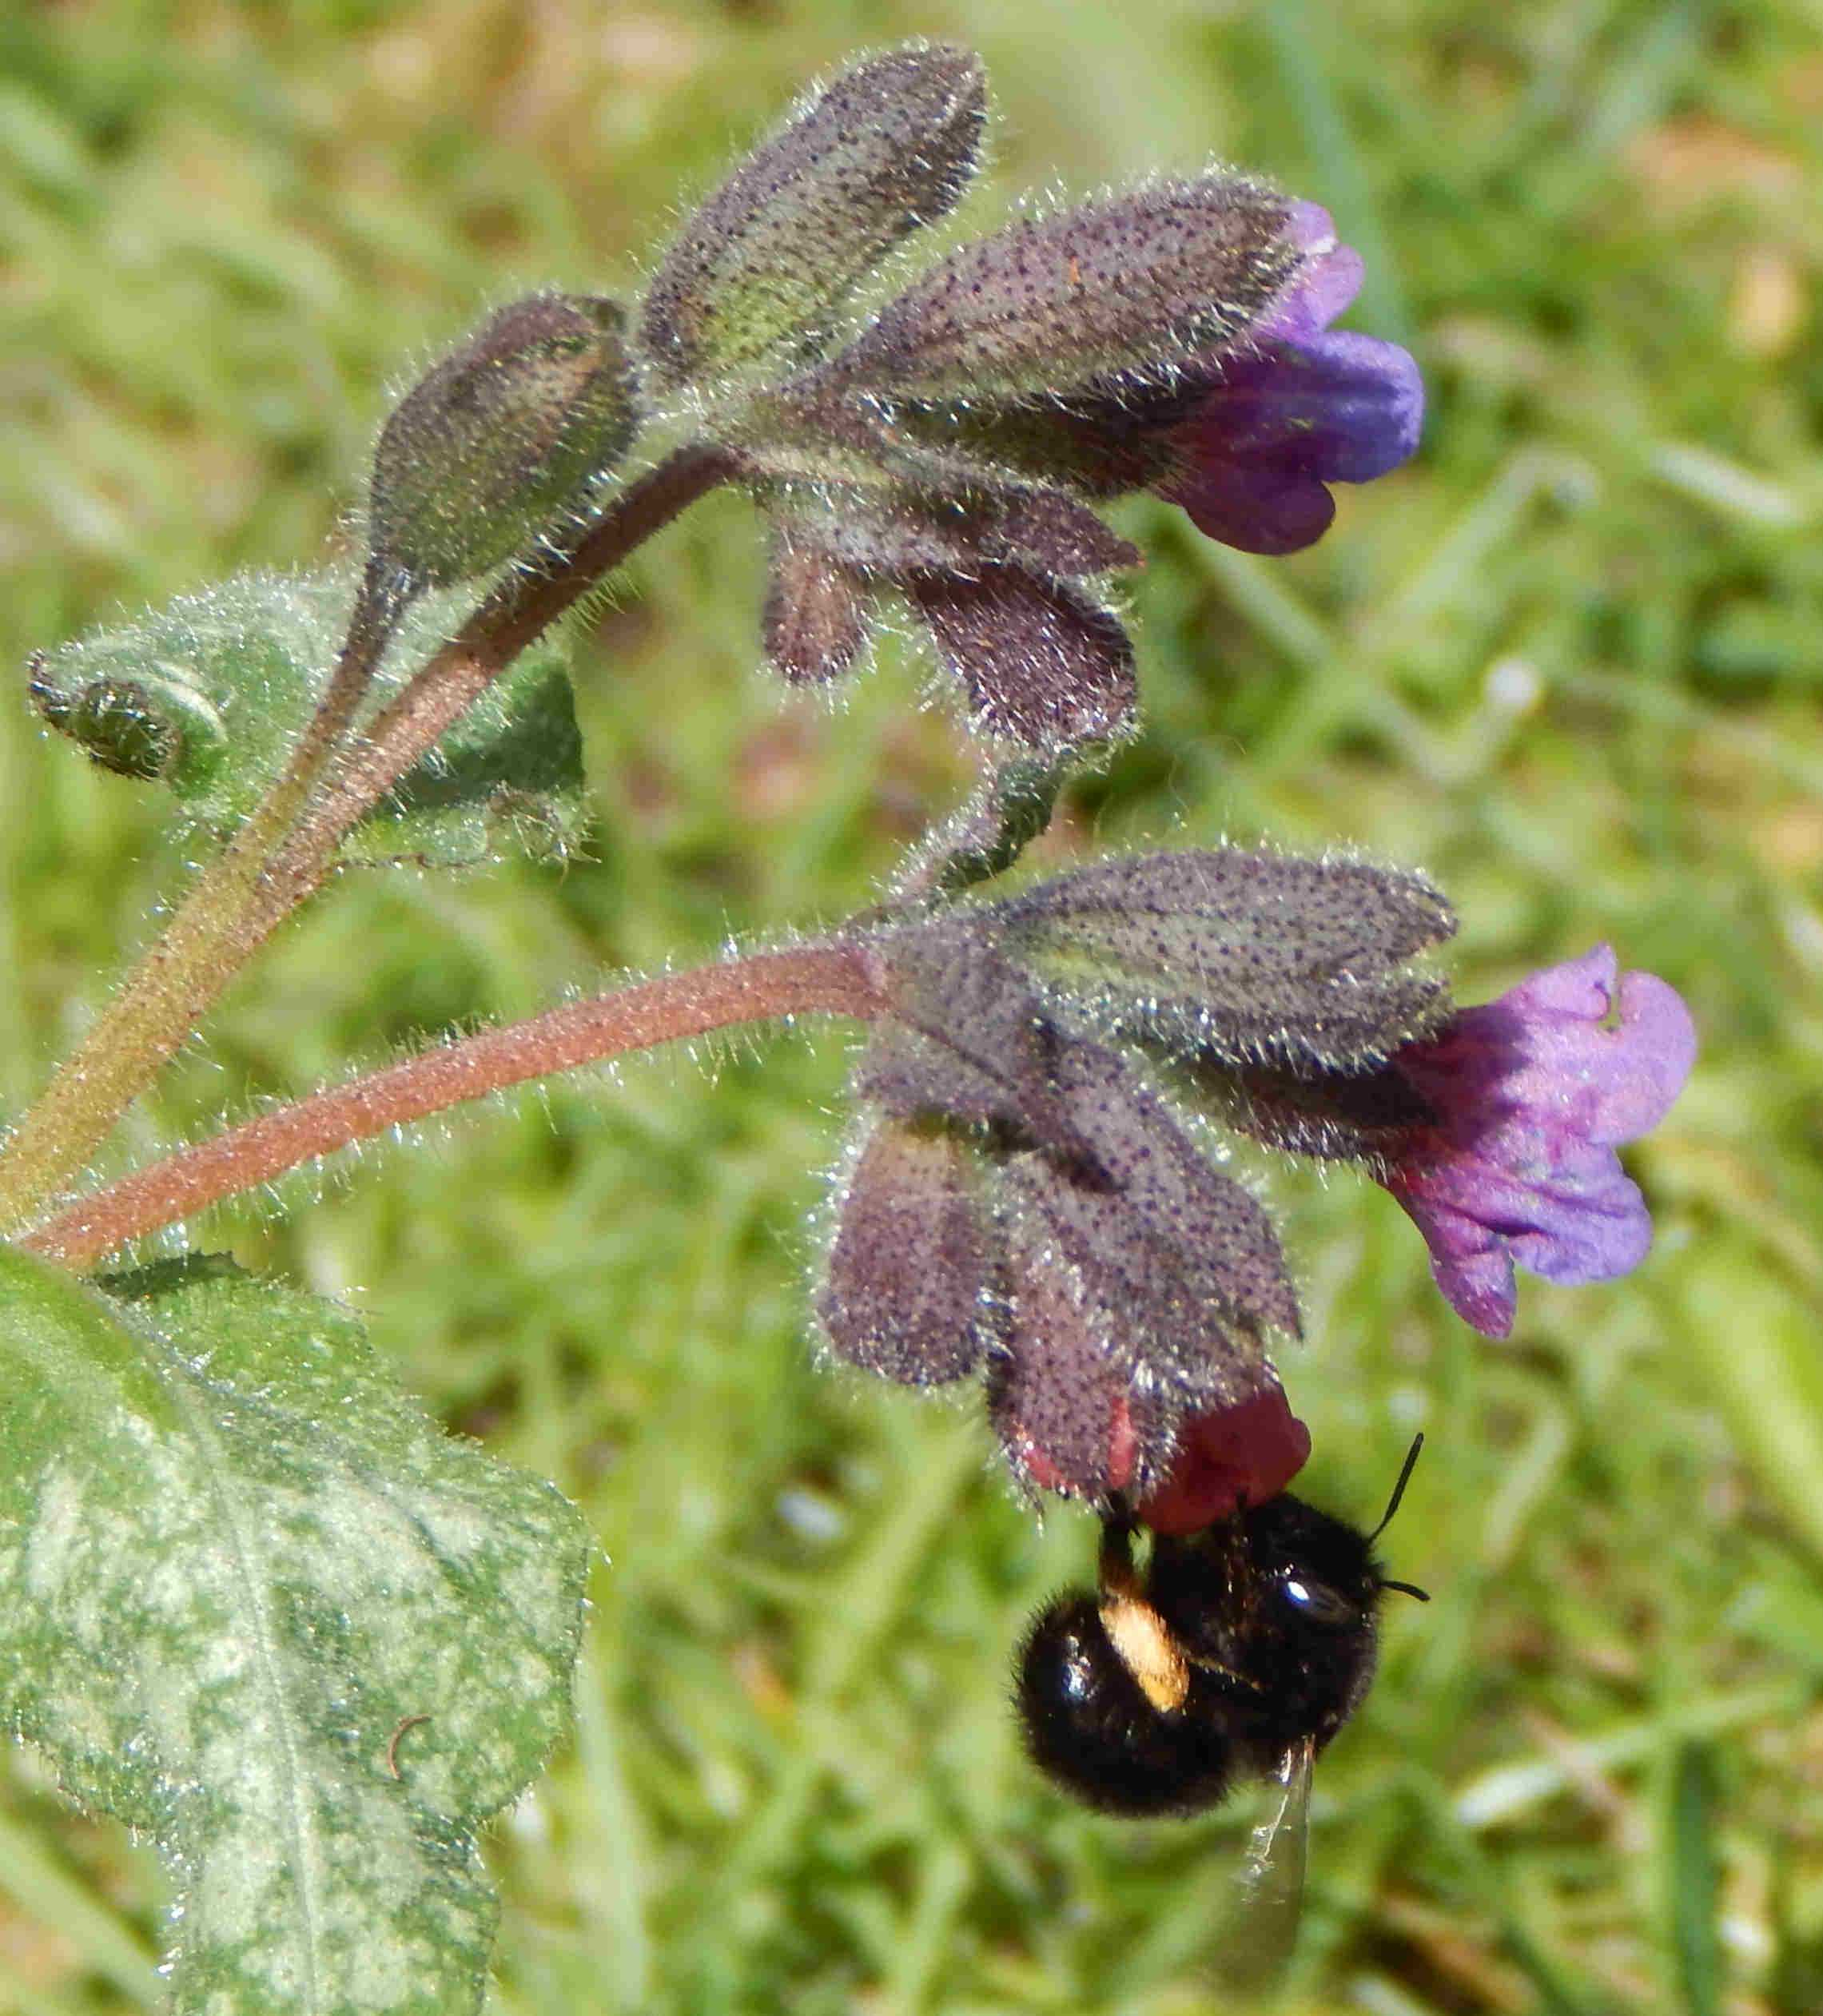 Common names are also given for bees, such as the 'Hairy-footed flower bee'.